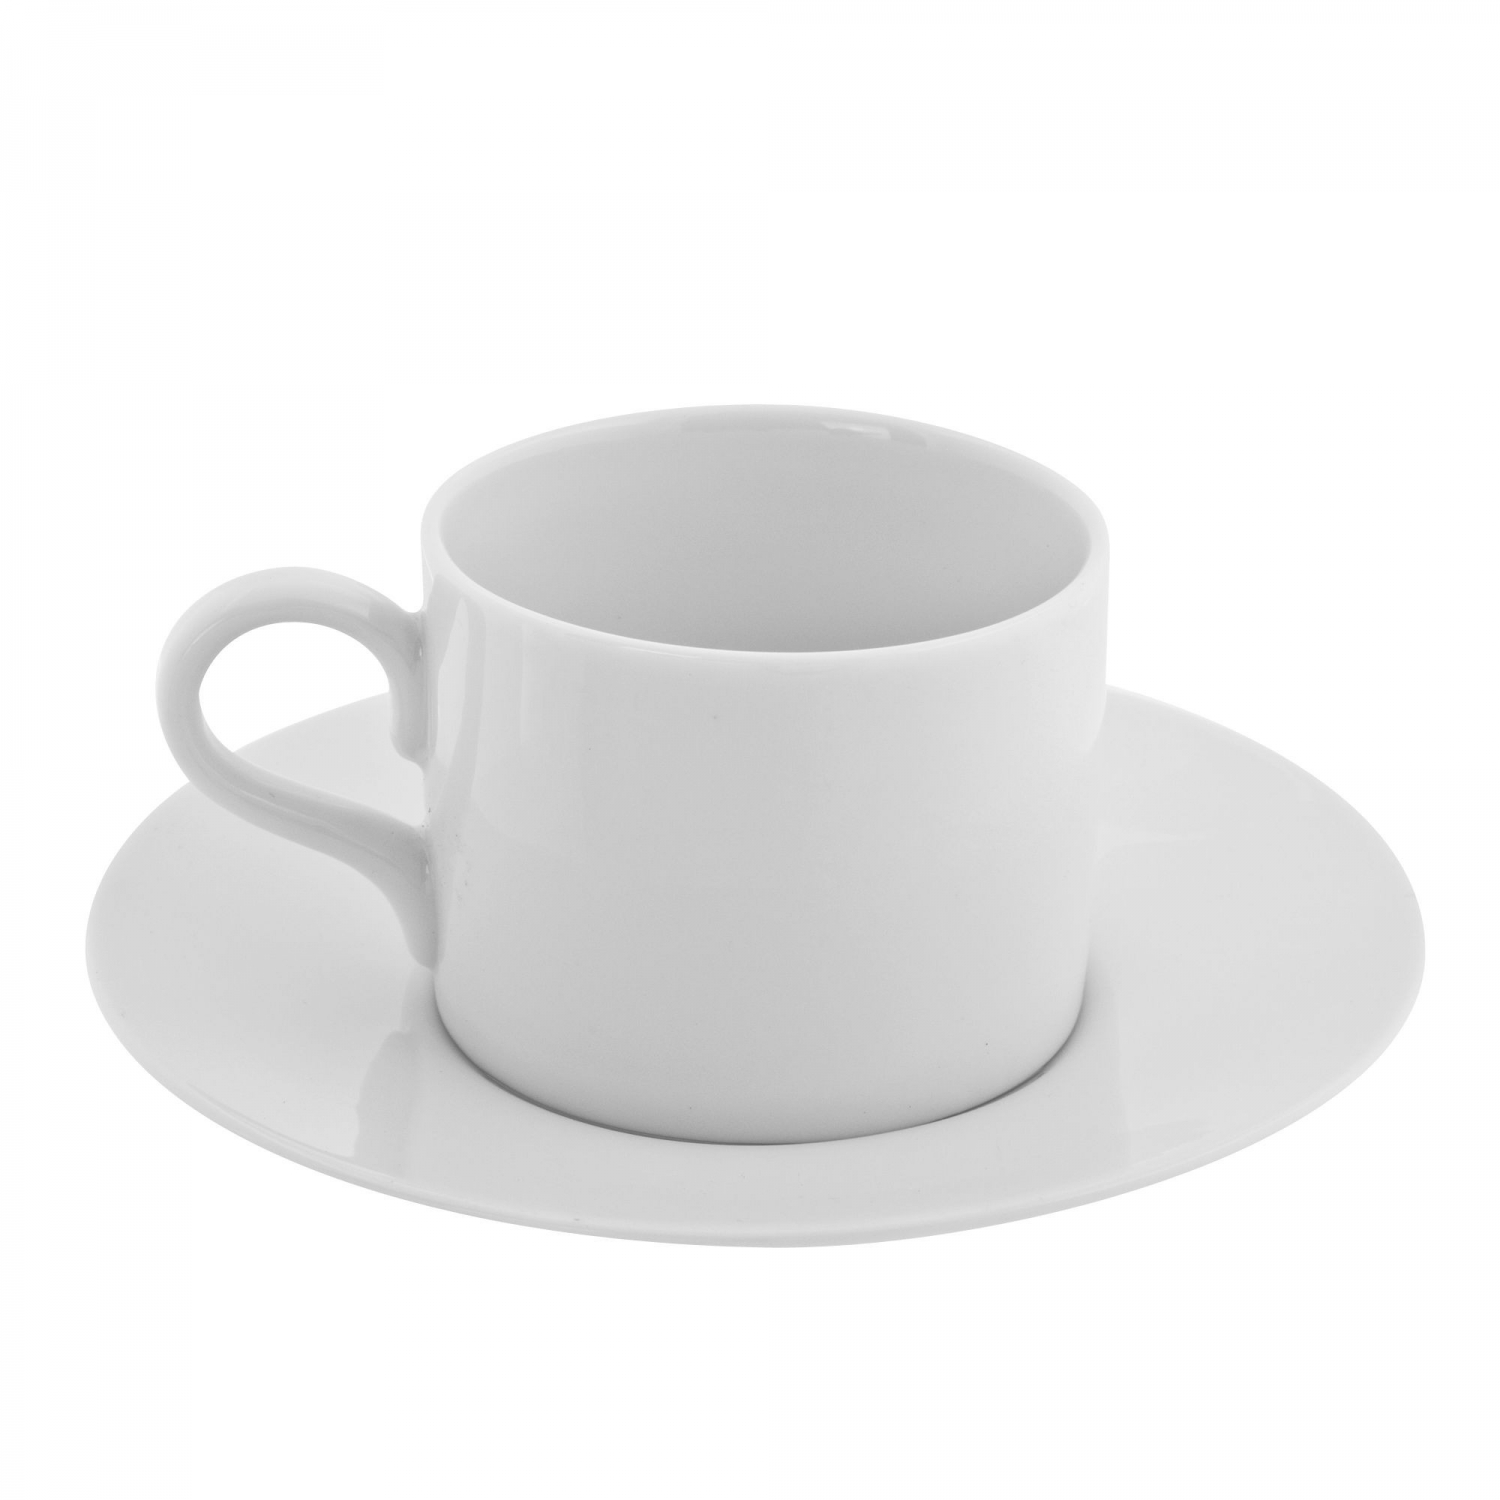 10 Strawberry Street RW0428 Royal White Demitasse Cup and Saucer Set 4 oz.